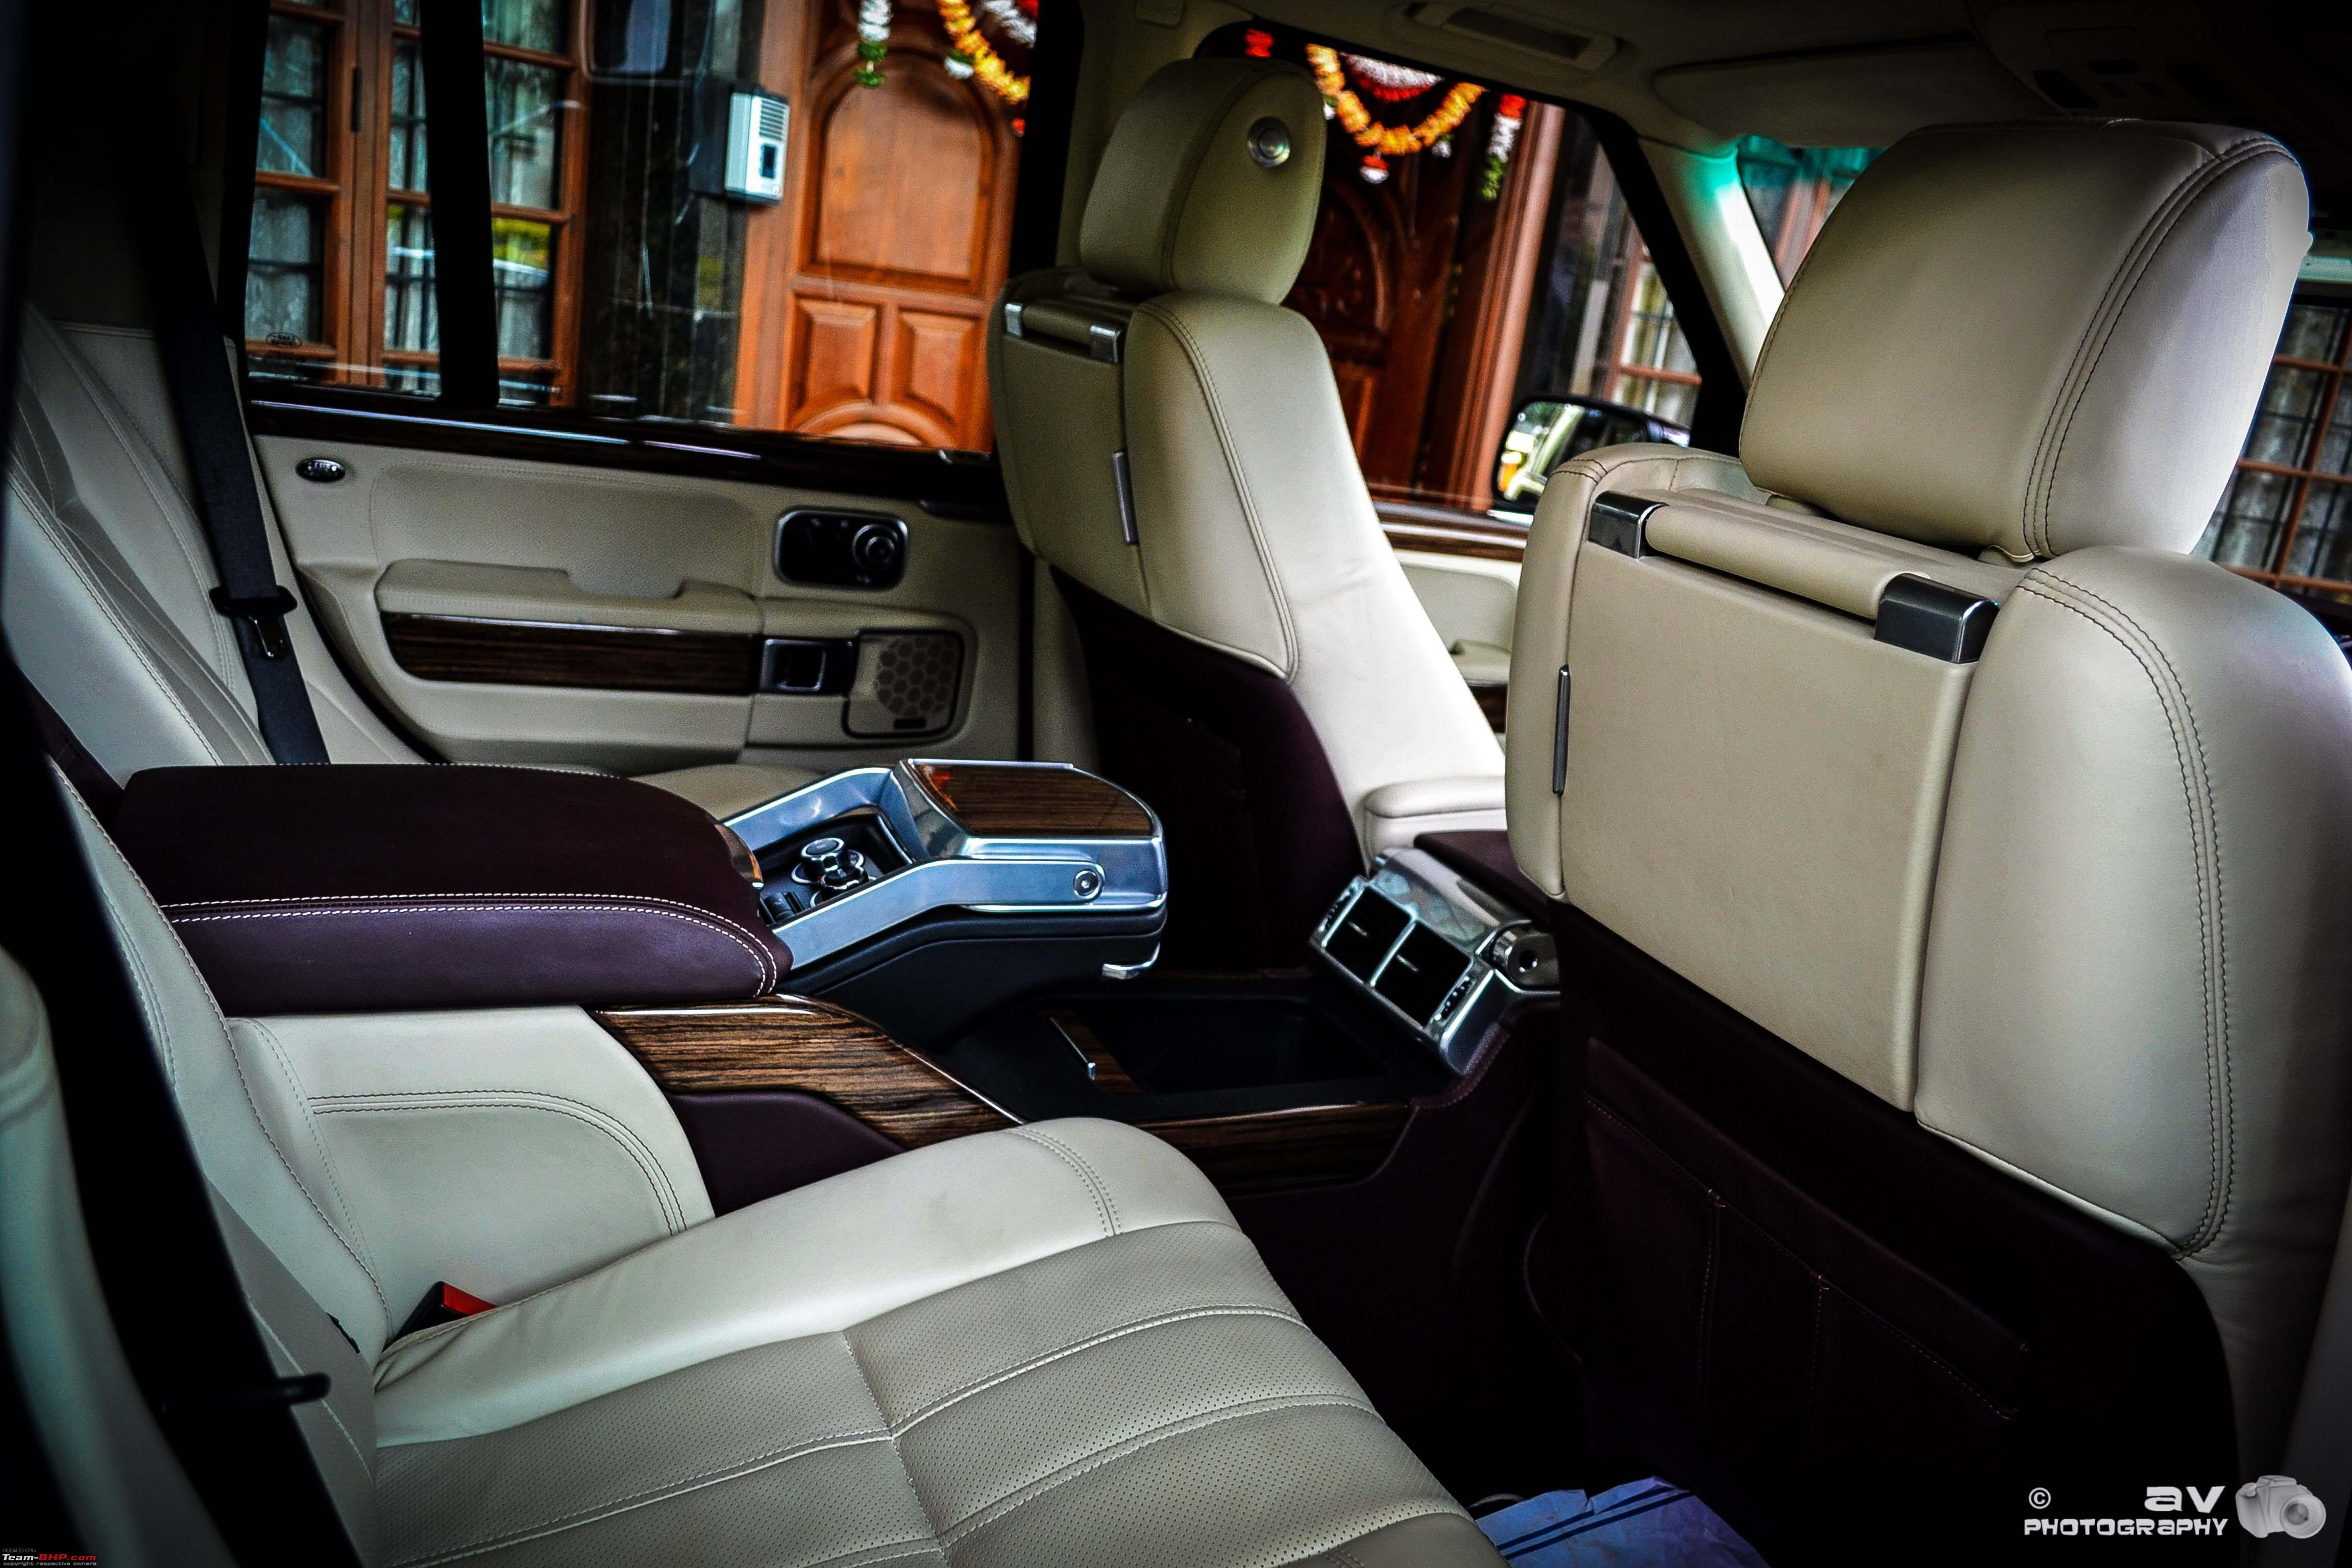 2012 Range Rover Autobiography Ultimate Edition - Page 2 - Team-BHP